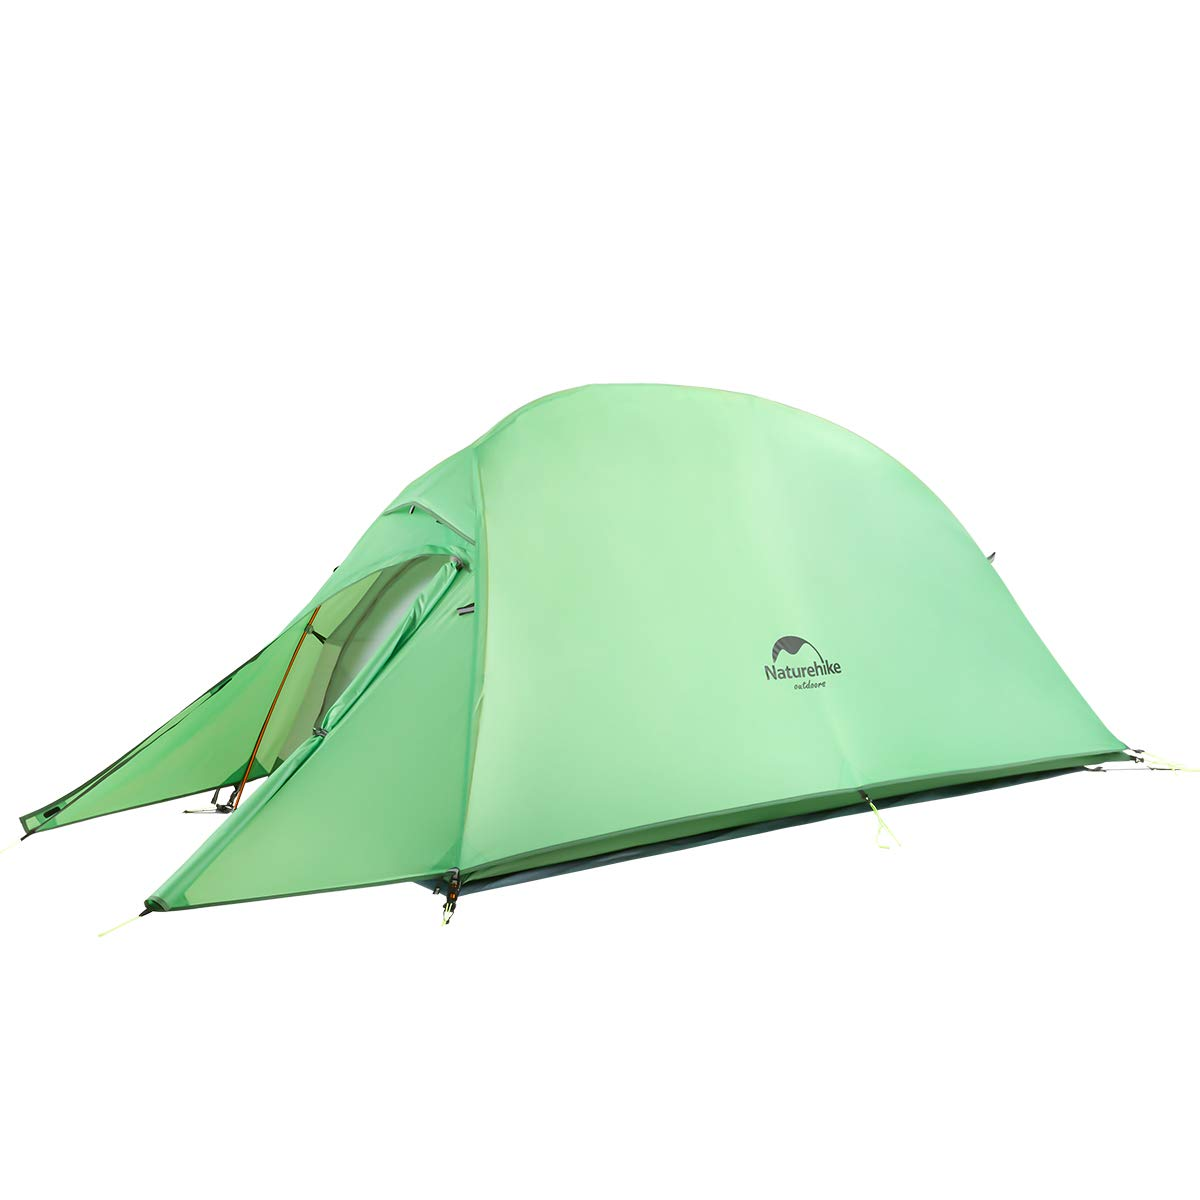 Naturehike Cloud up 1 Person Backpacking Tent Lightweight Camping Hiking Dome Tent for 1 Man (210T Green) by Naturehike